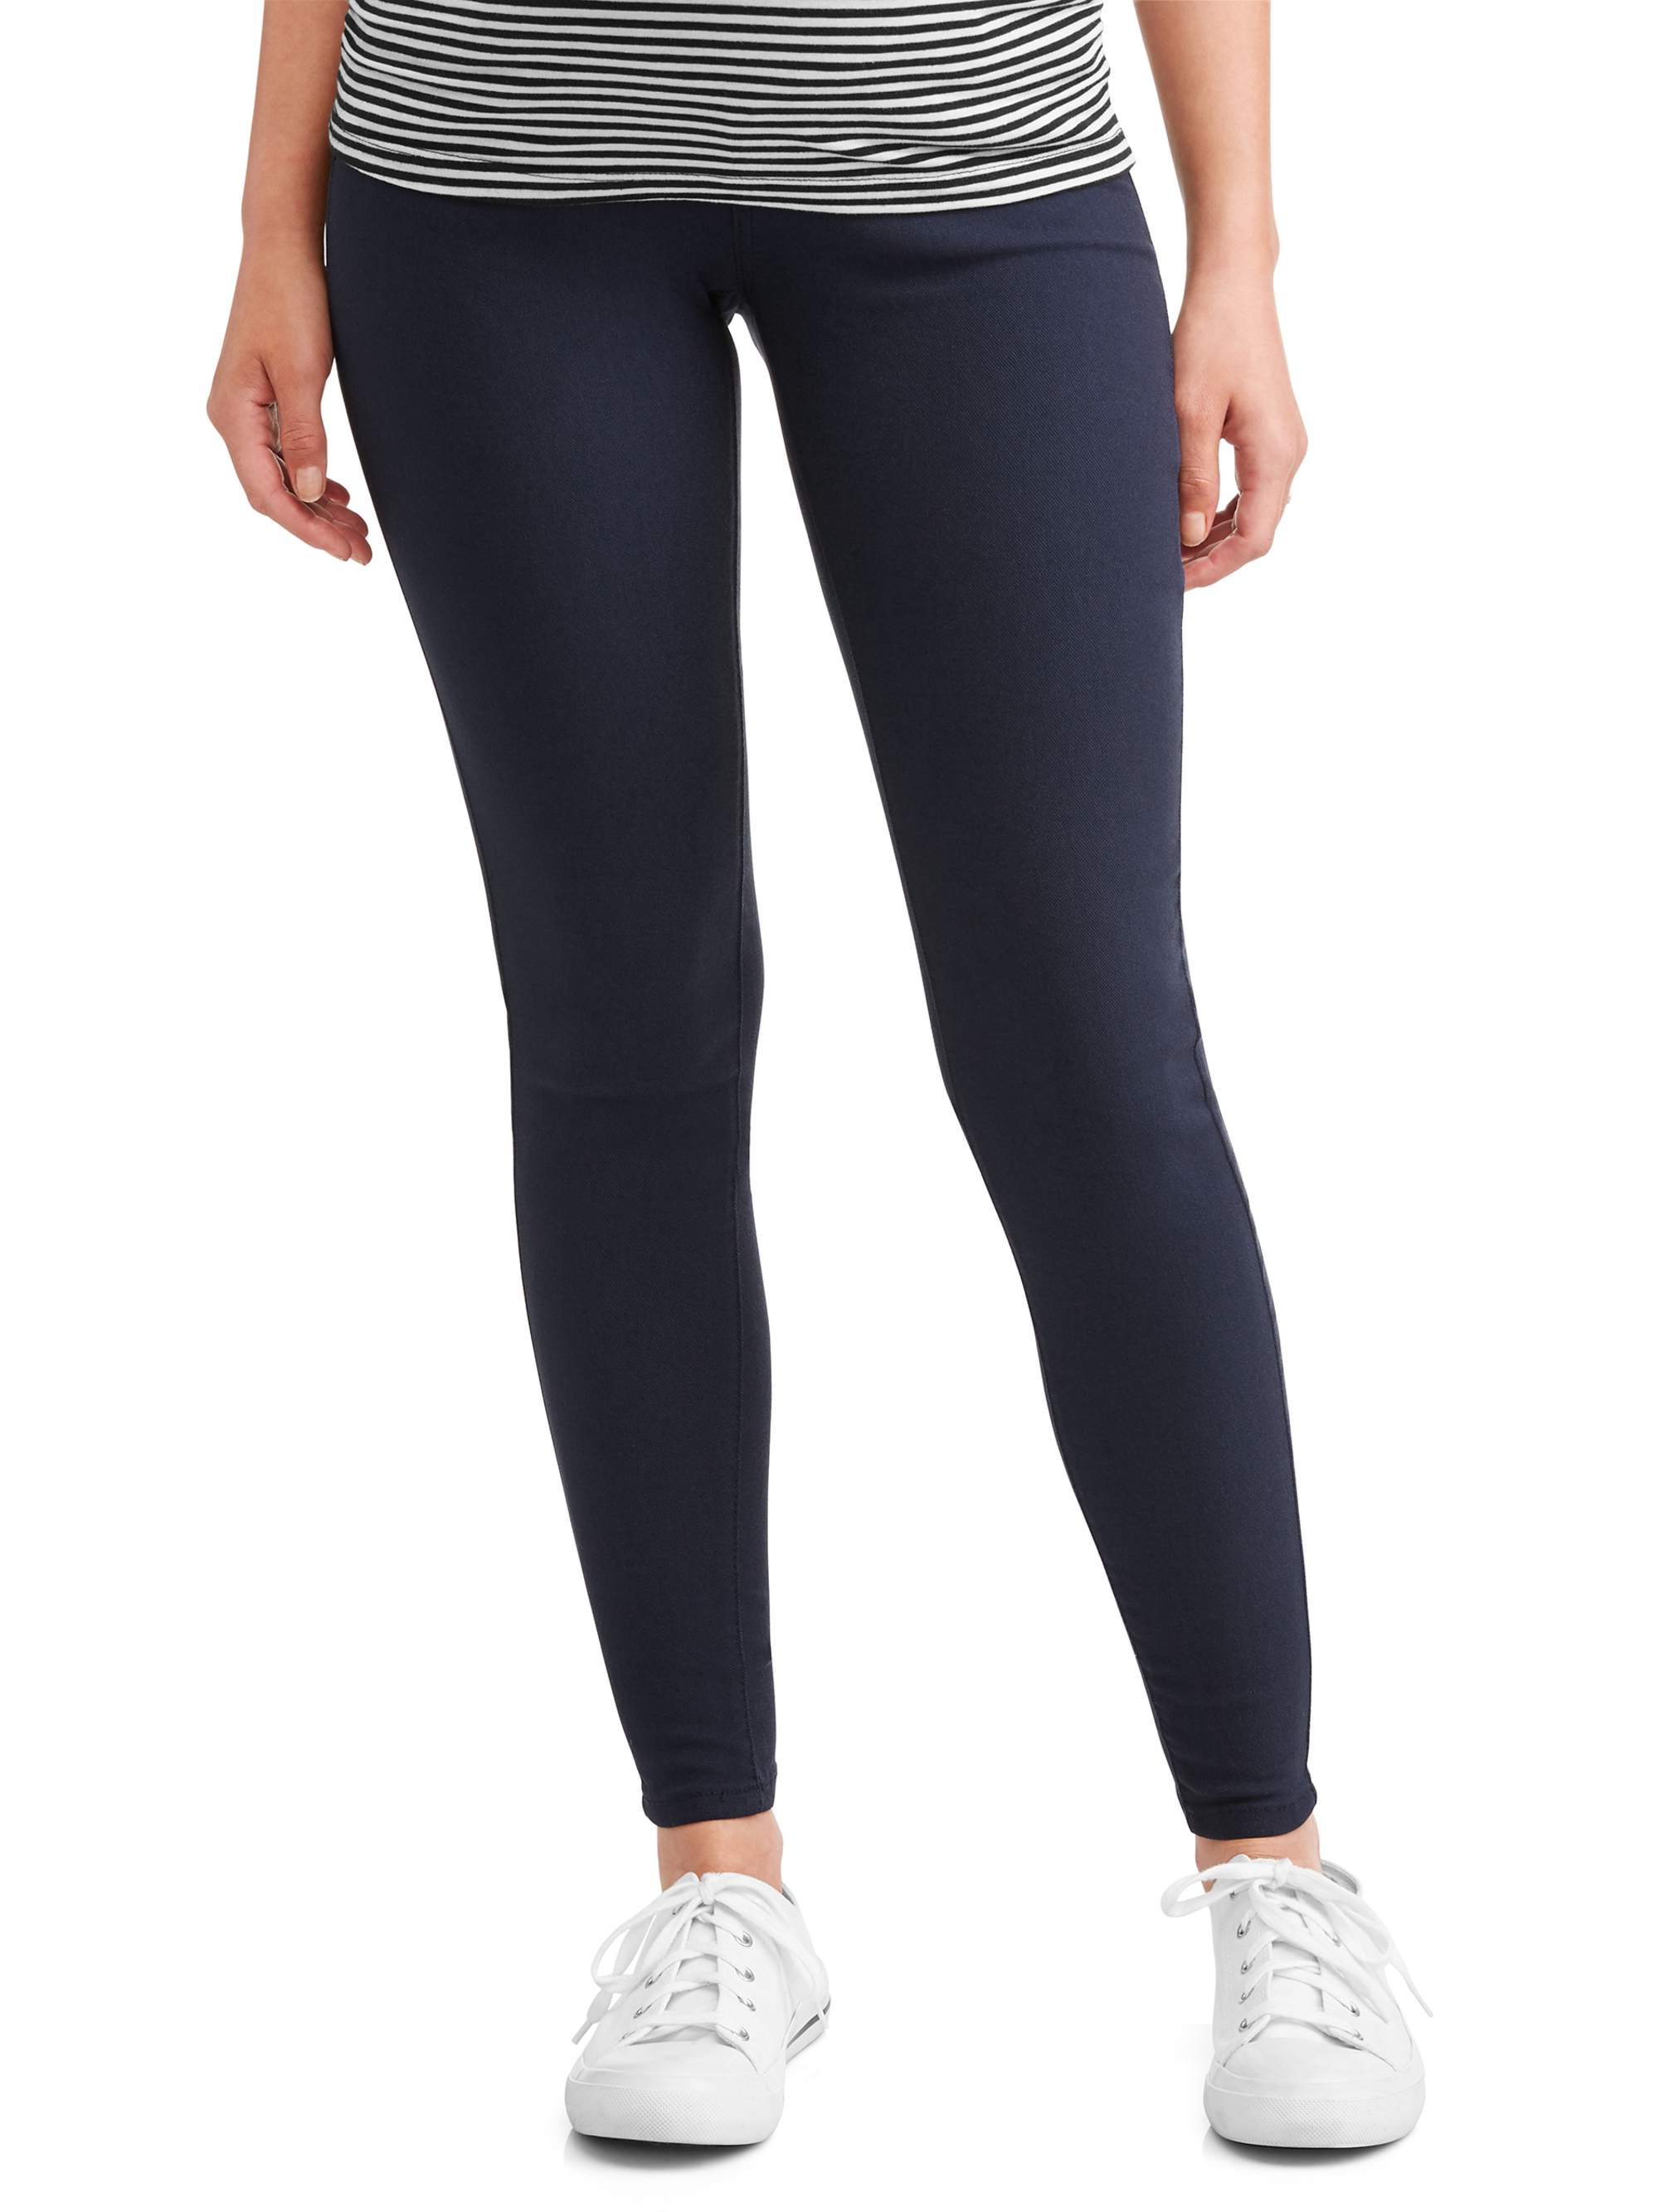 Maternity over the belly 5 pocket skinny pants - available in plus sizes